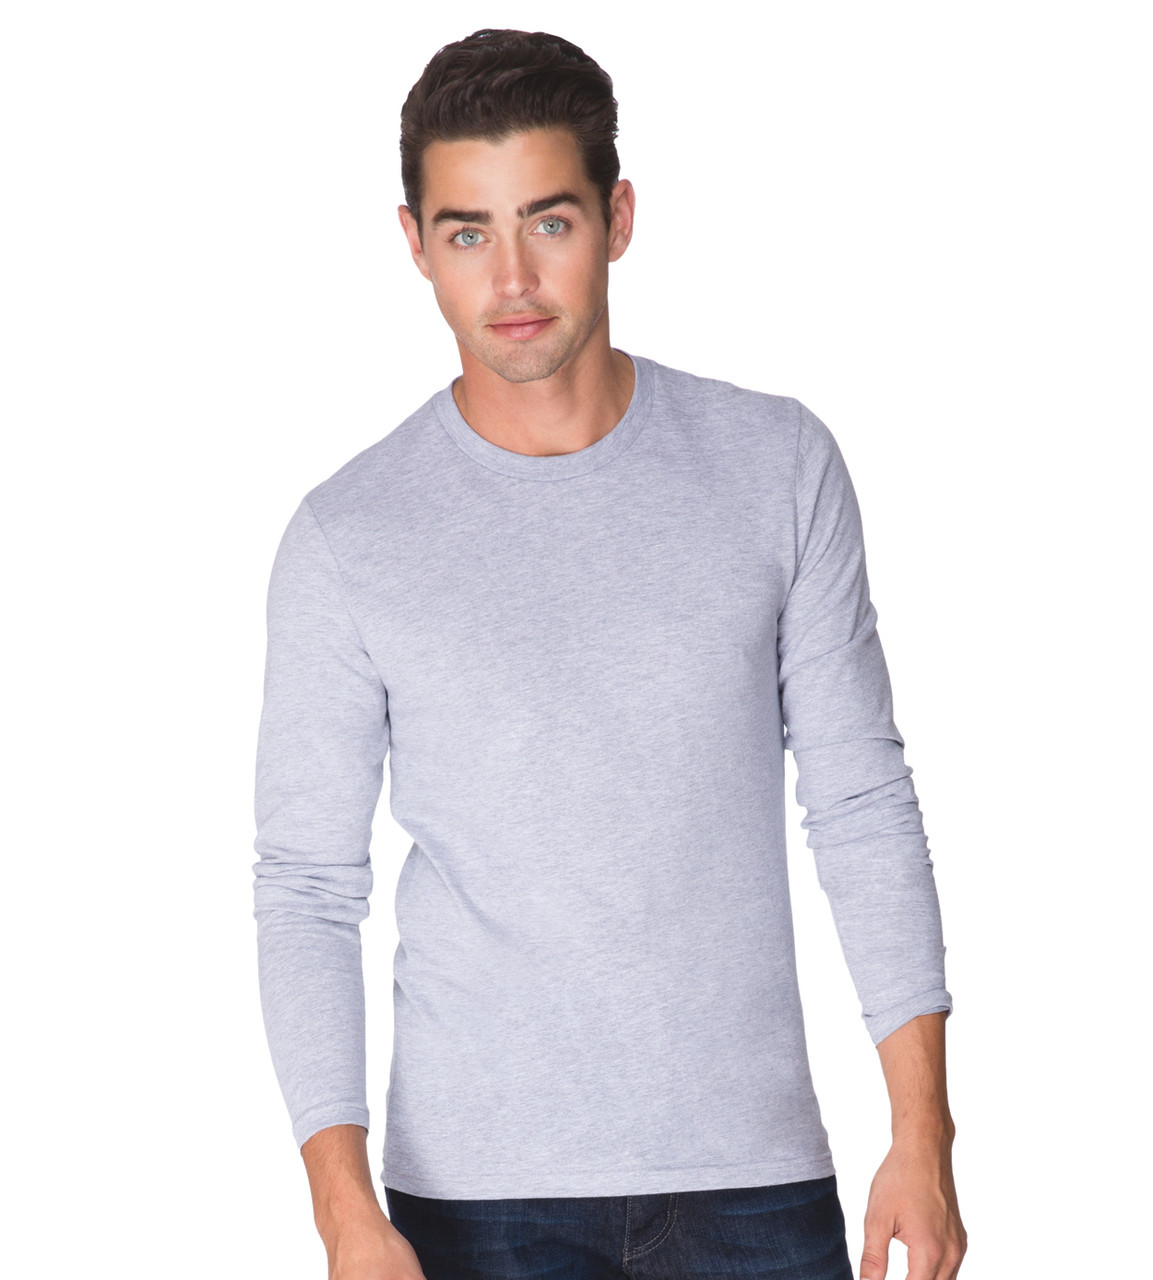 cf81a9031056 Next Level 3601 - Men's Fitted Long Sleeve Cotton T-Shirt ...